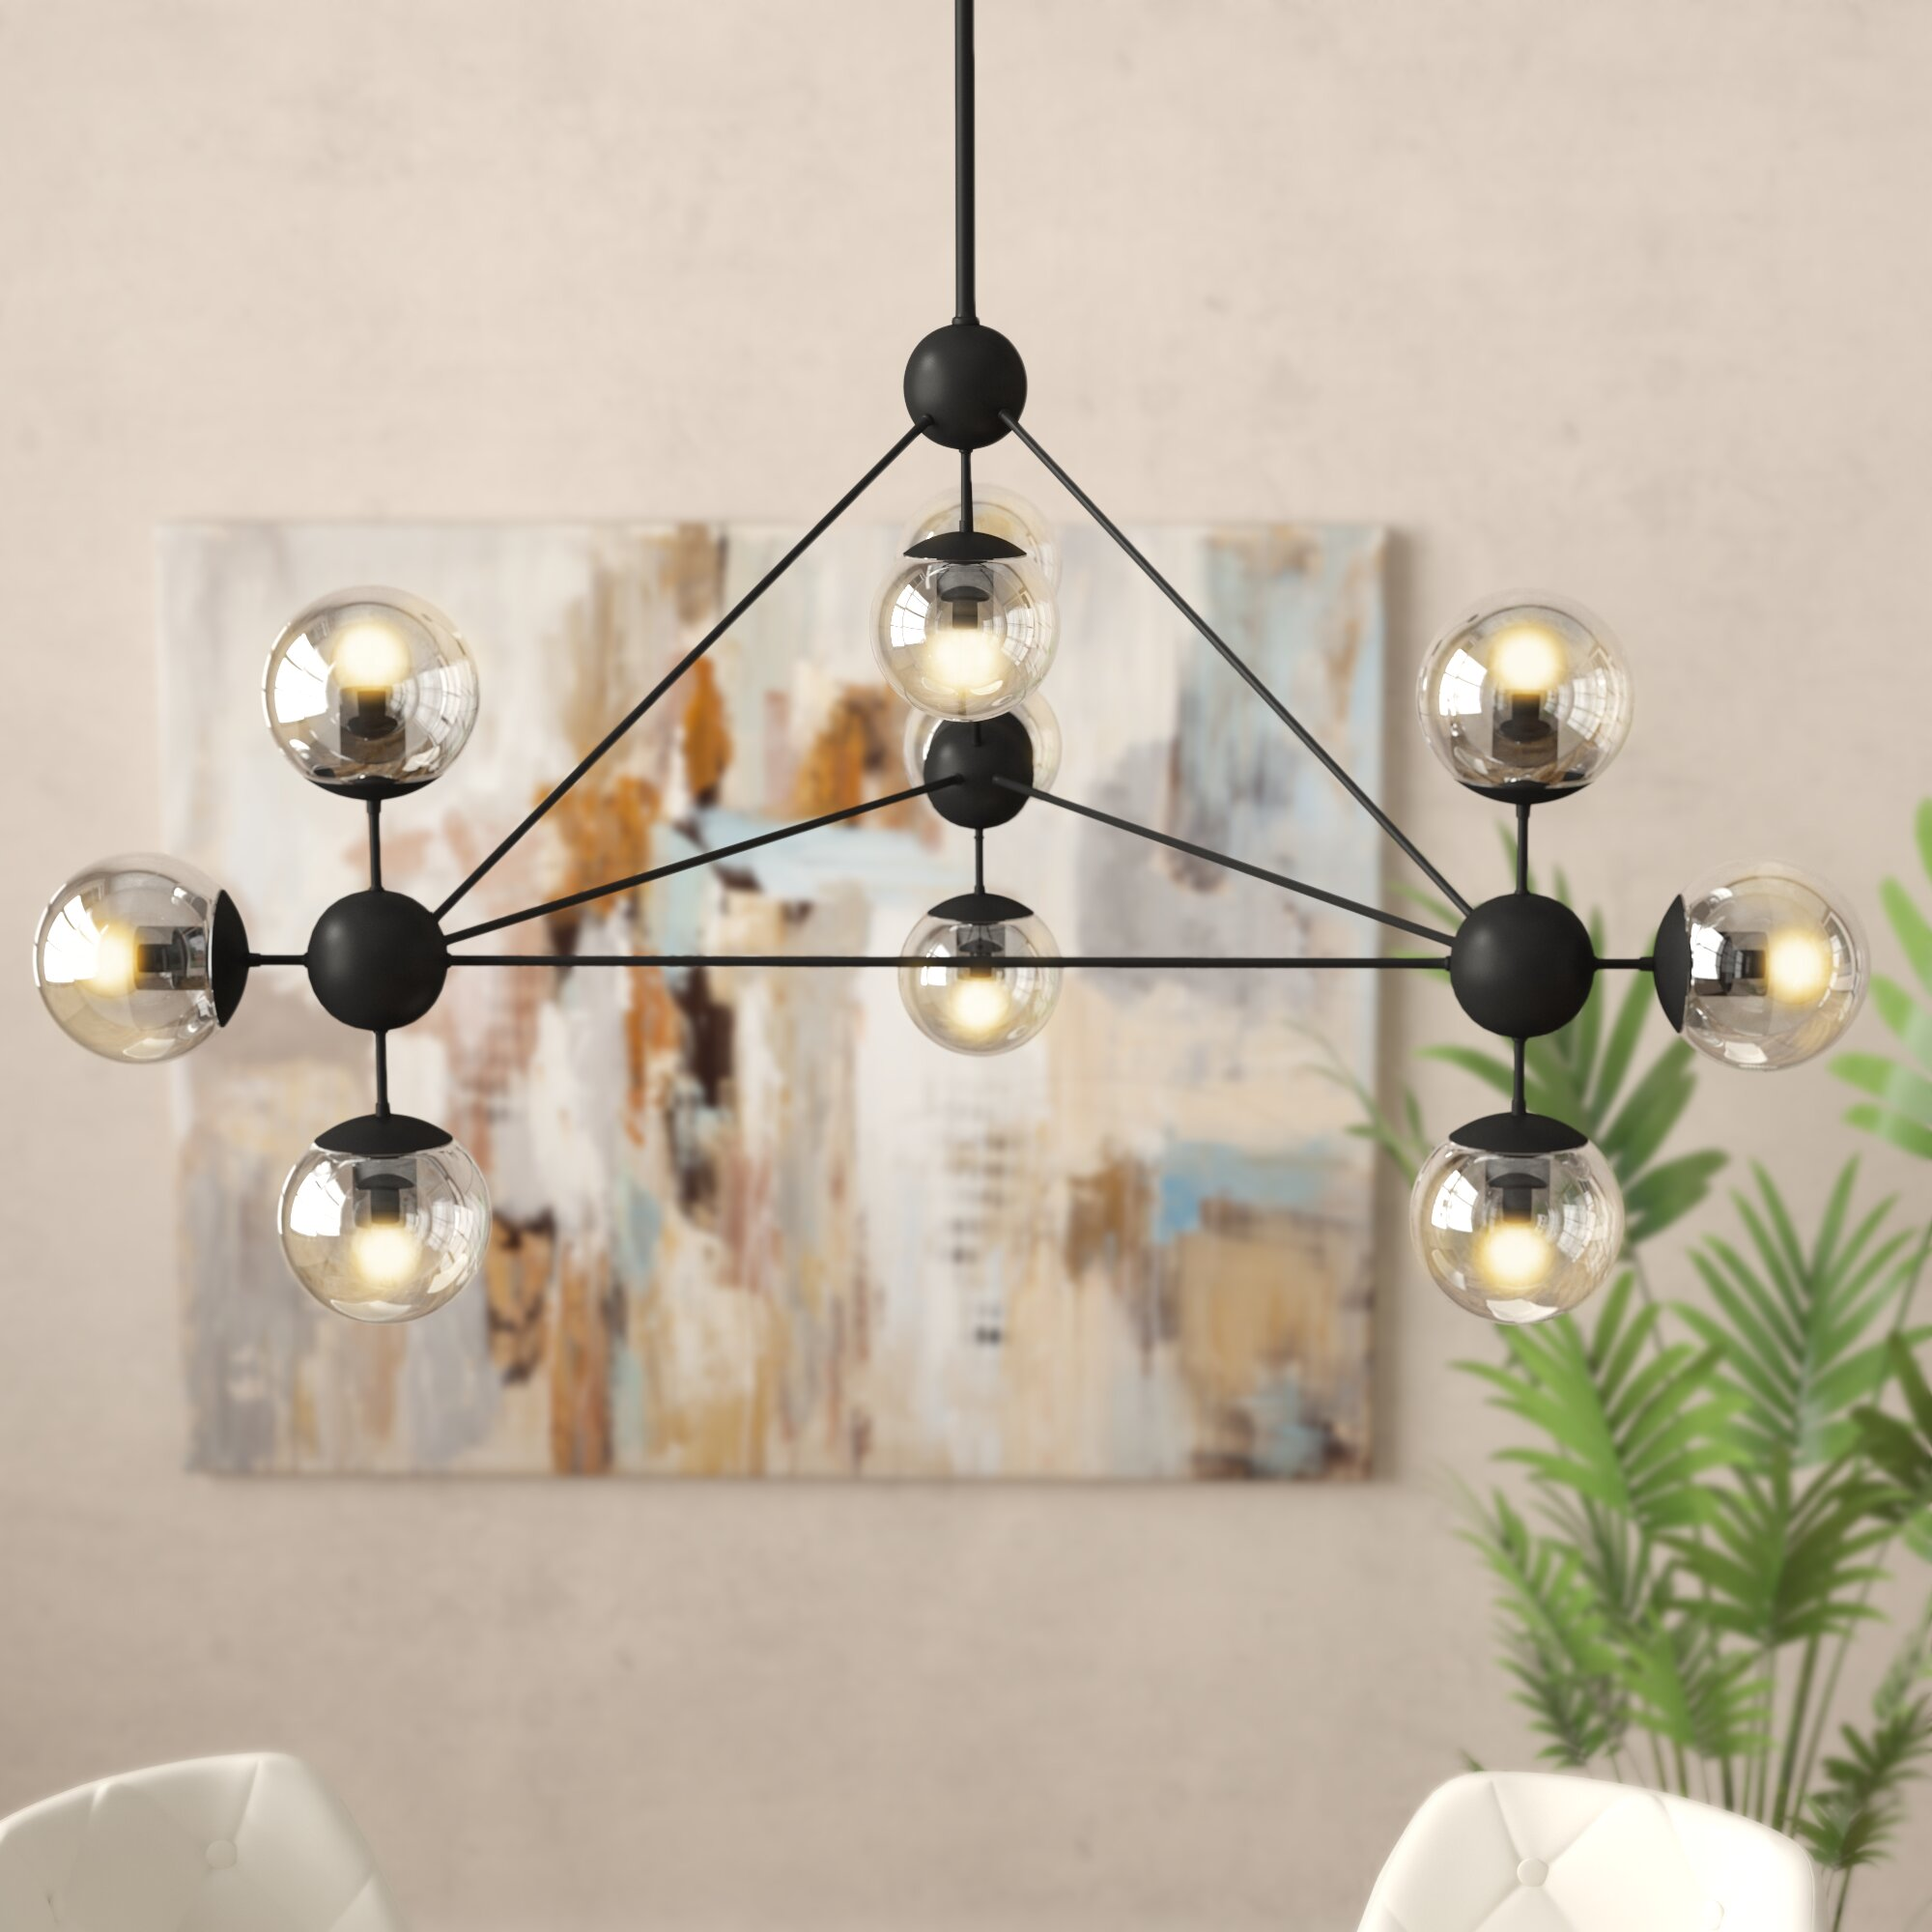 Ivy Bronx Julius 10 Light Sputnik Modern Linear Chandelier Reviews Wayfair